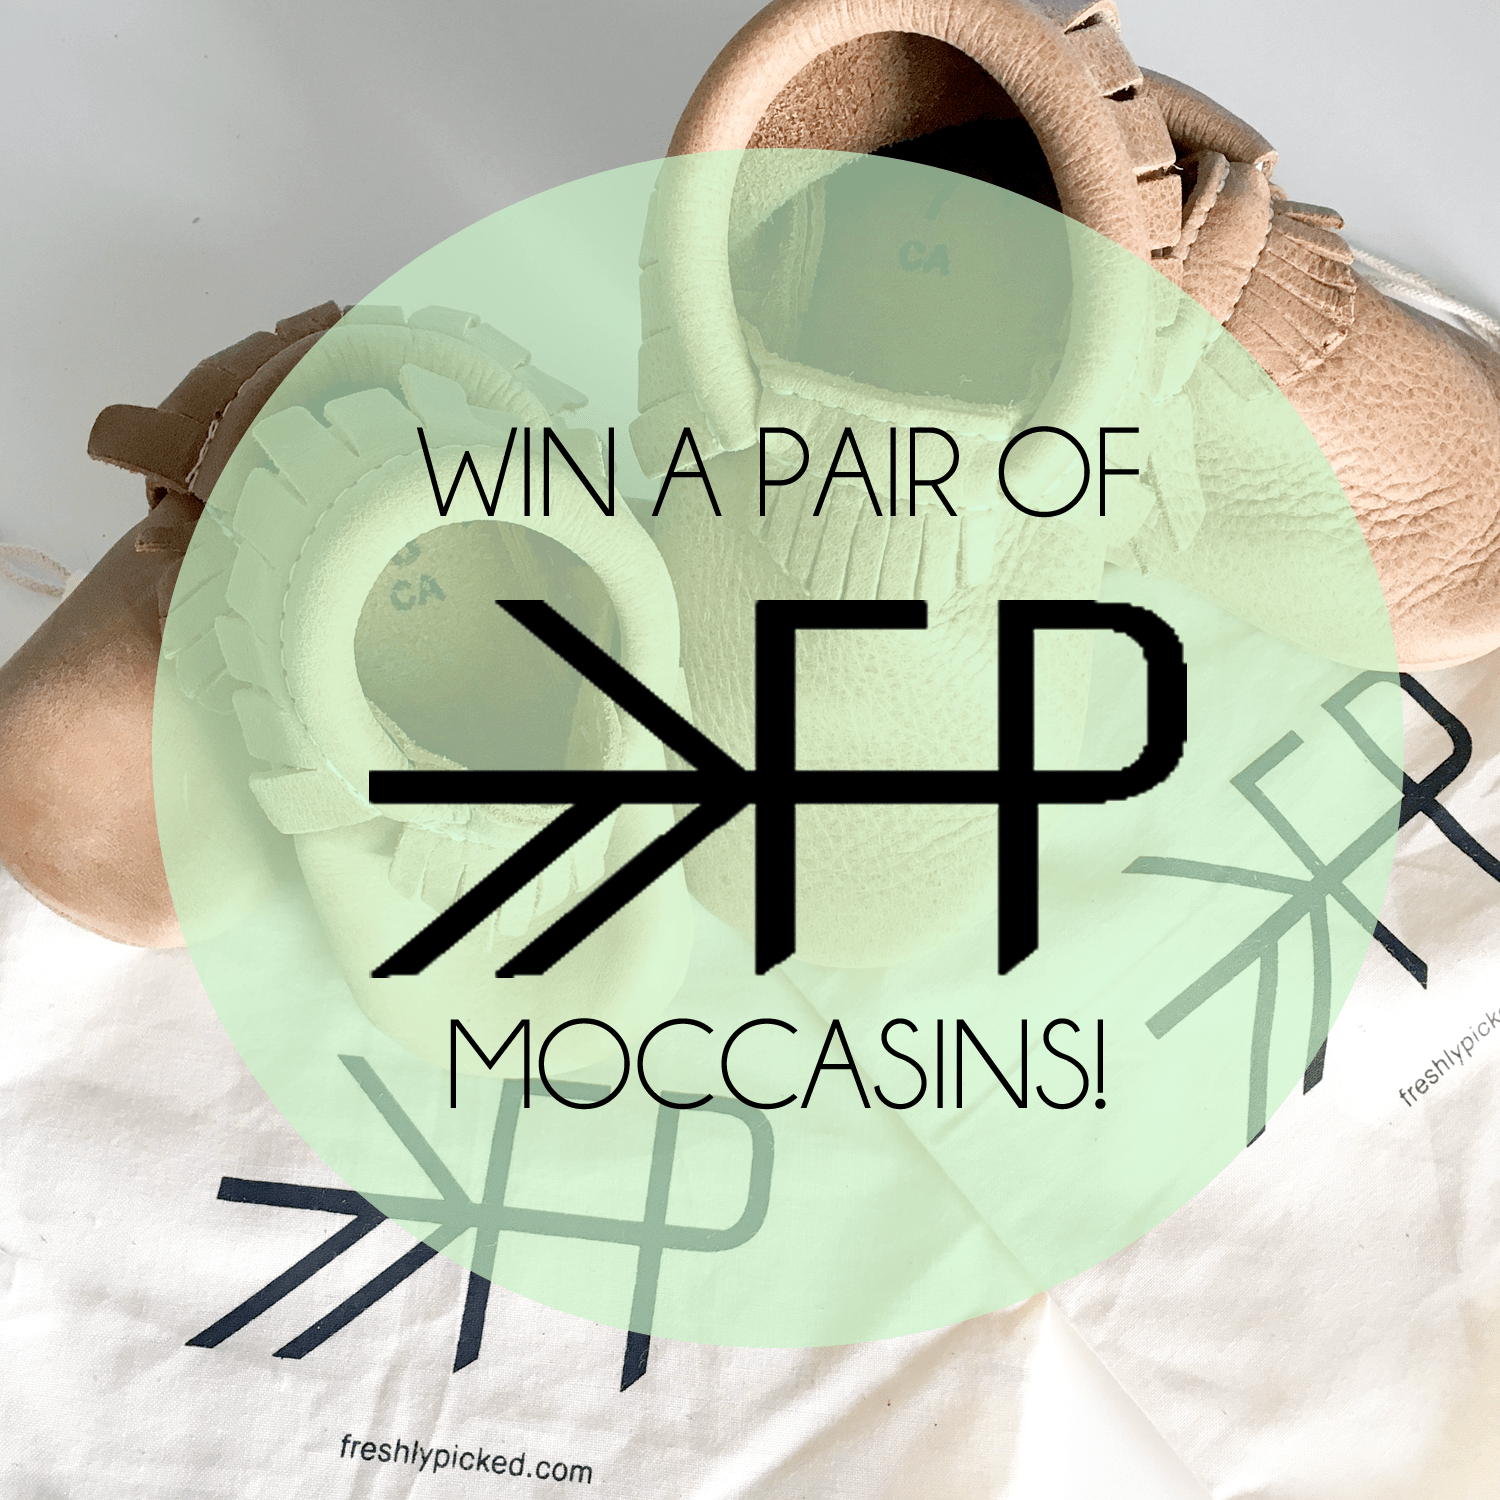 Freshly Picked Moccasin Review + Win a Pair of Moccasins